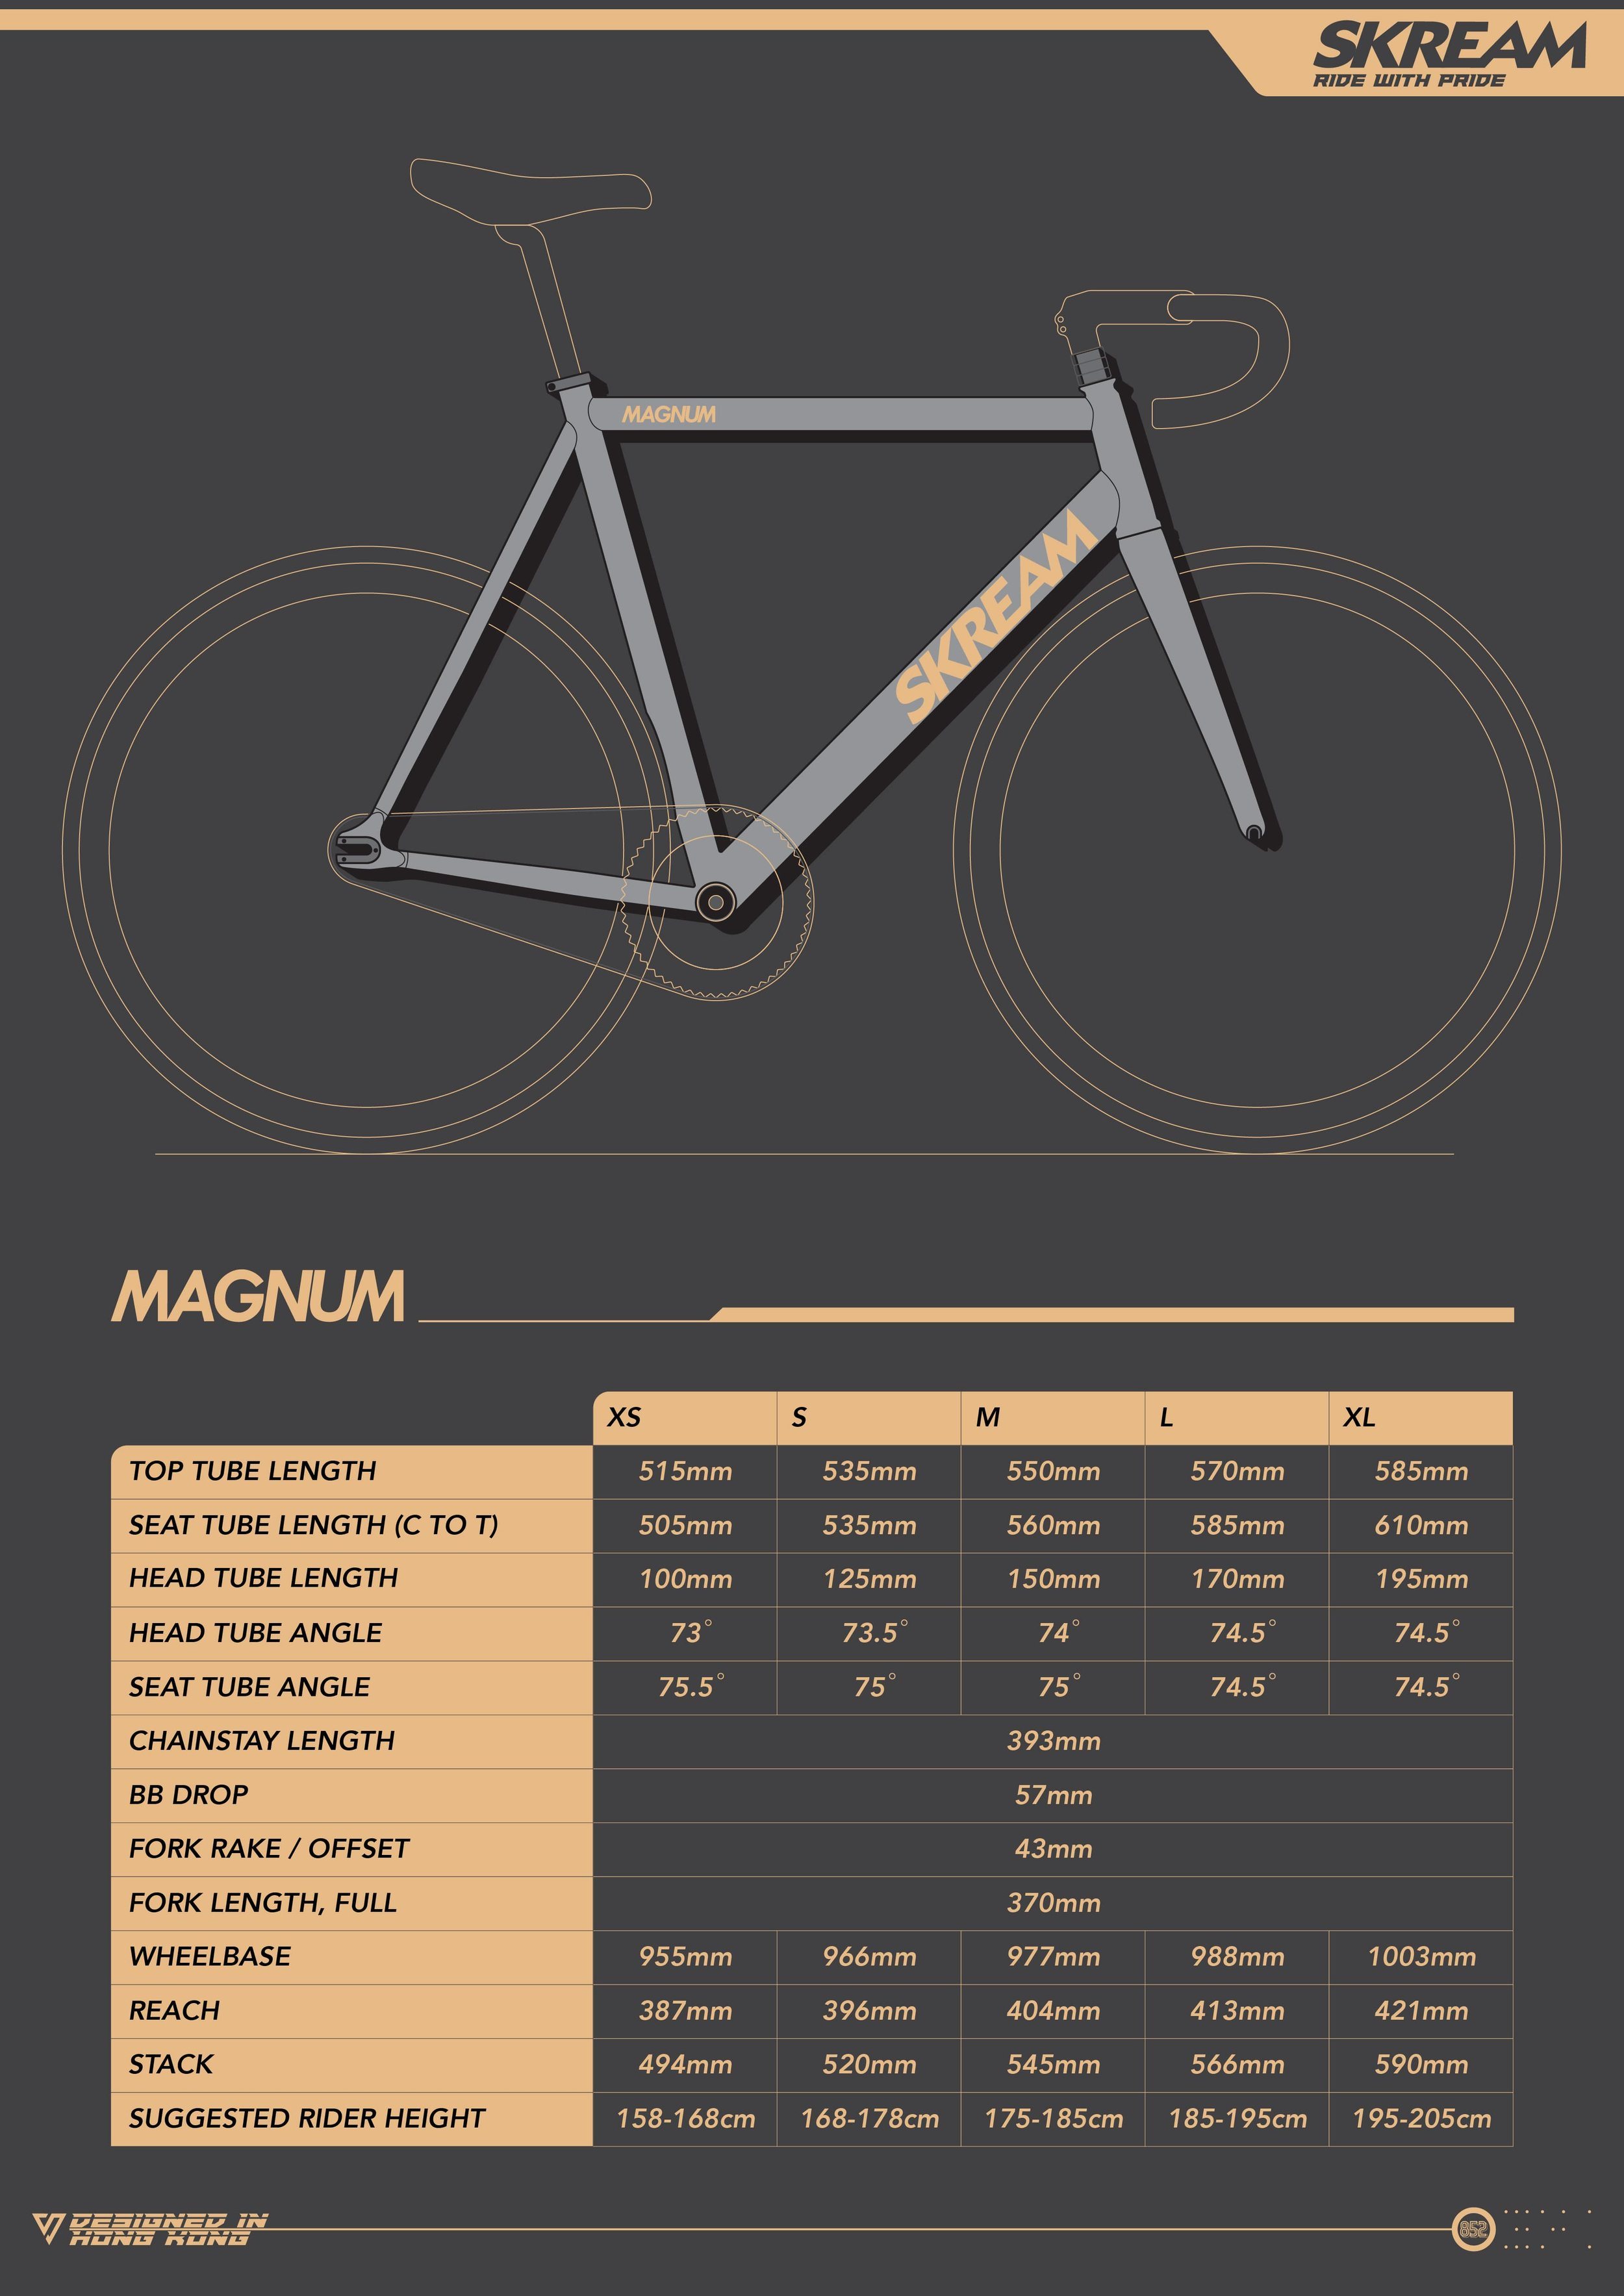 SPECIFICATIONS:    Fork : Full Carbon Aero Tapered Fork Size : XS | S | M | L | XL Tube : 6066-T6 Triple Butted Aluminium Tubing Frame Weight : 1400g (S) / Fork: 380g (uncut) Bottom Bracket Threading : BSA BB 68mm (English) Seatpost Diameter : Ø 31,6 mm Head Set : Alloy Integrated Head Set Ø 1 1/8 - 1.5 Smooth Welding  *All frameset includes SKREAM headset and SKREAM seat clamp. Each frame is numbered.   Purchase